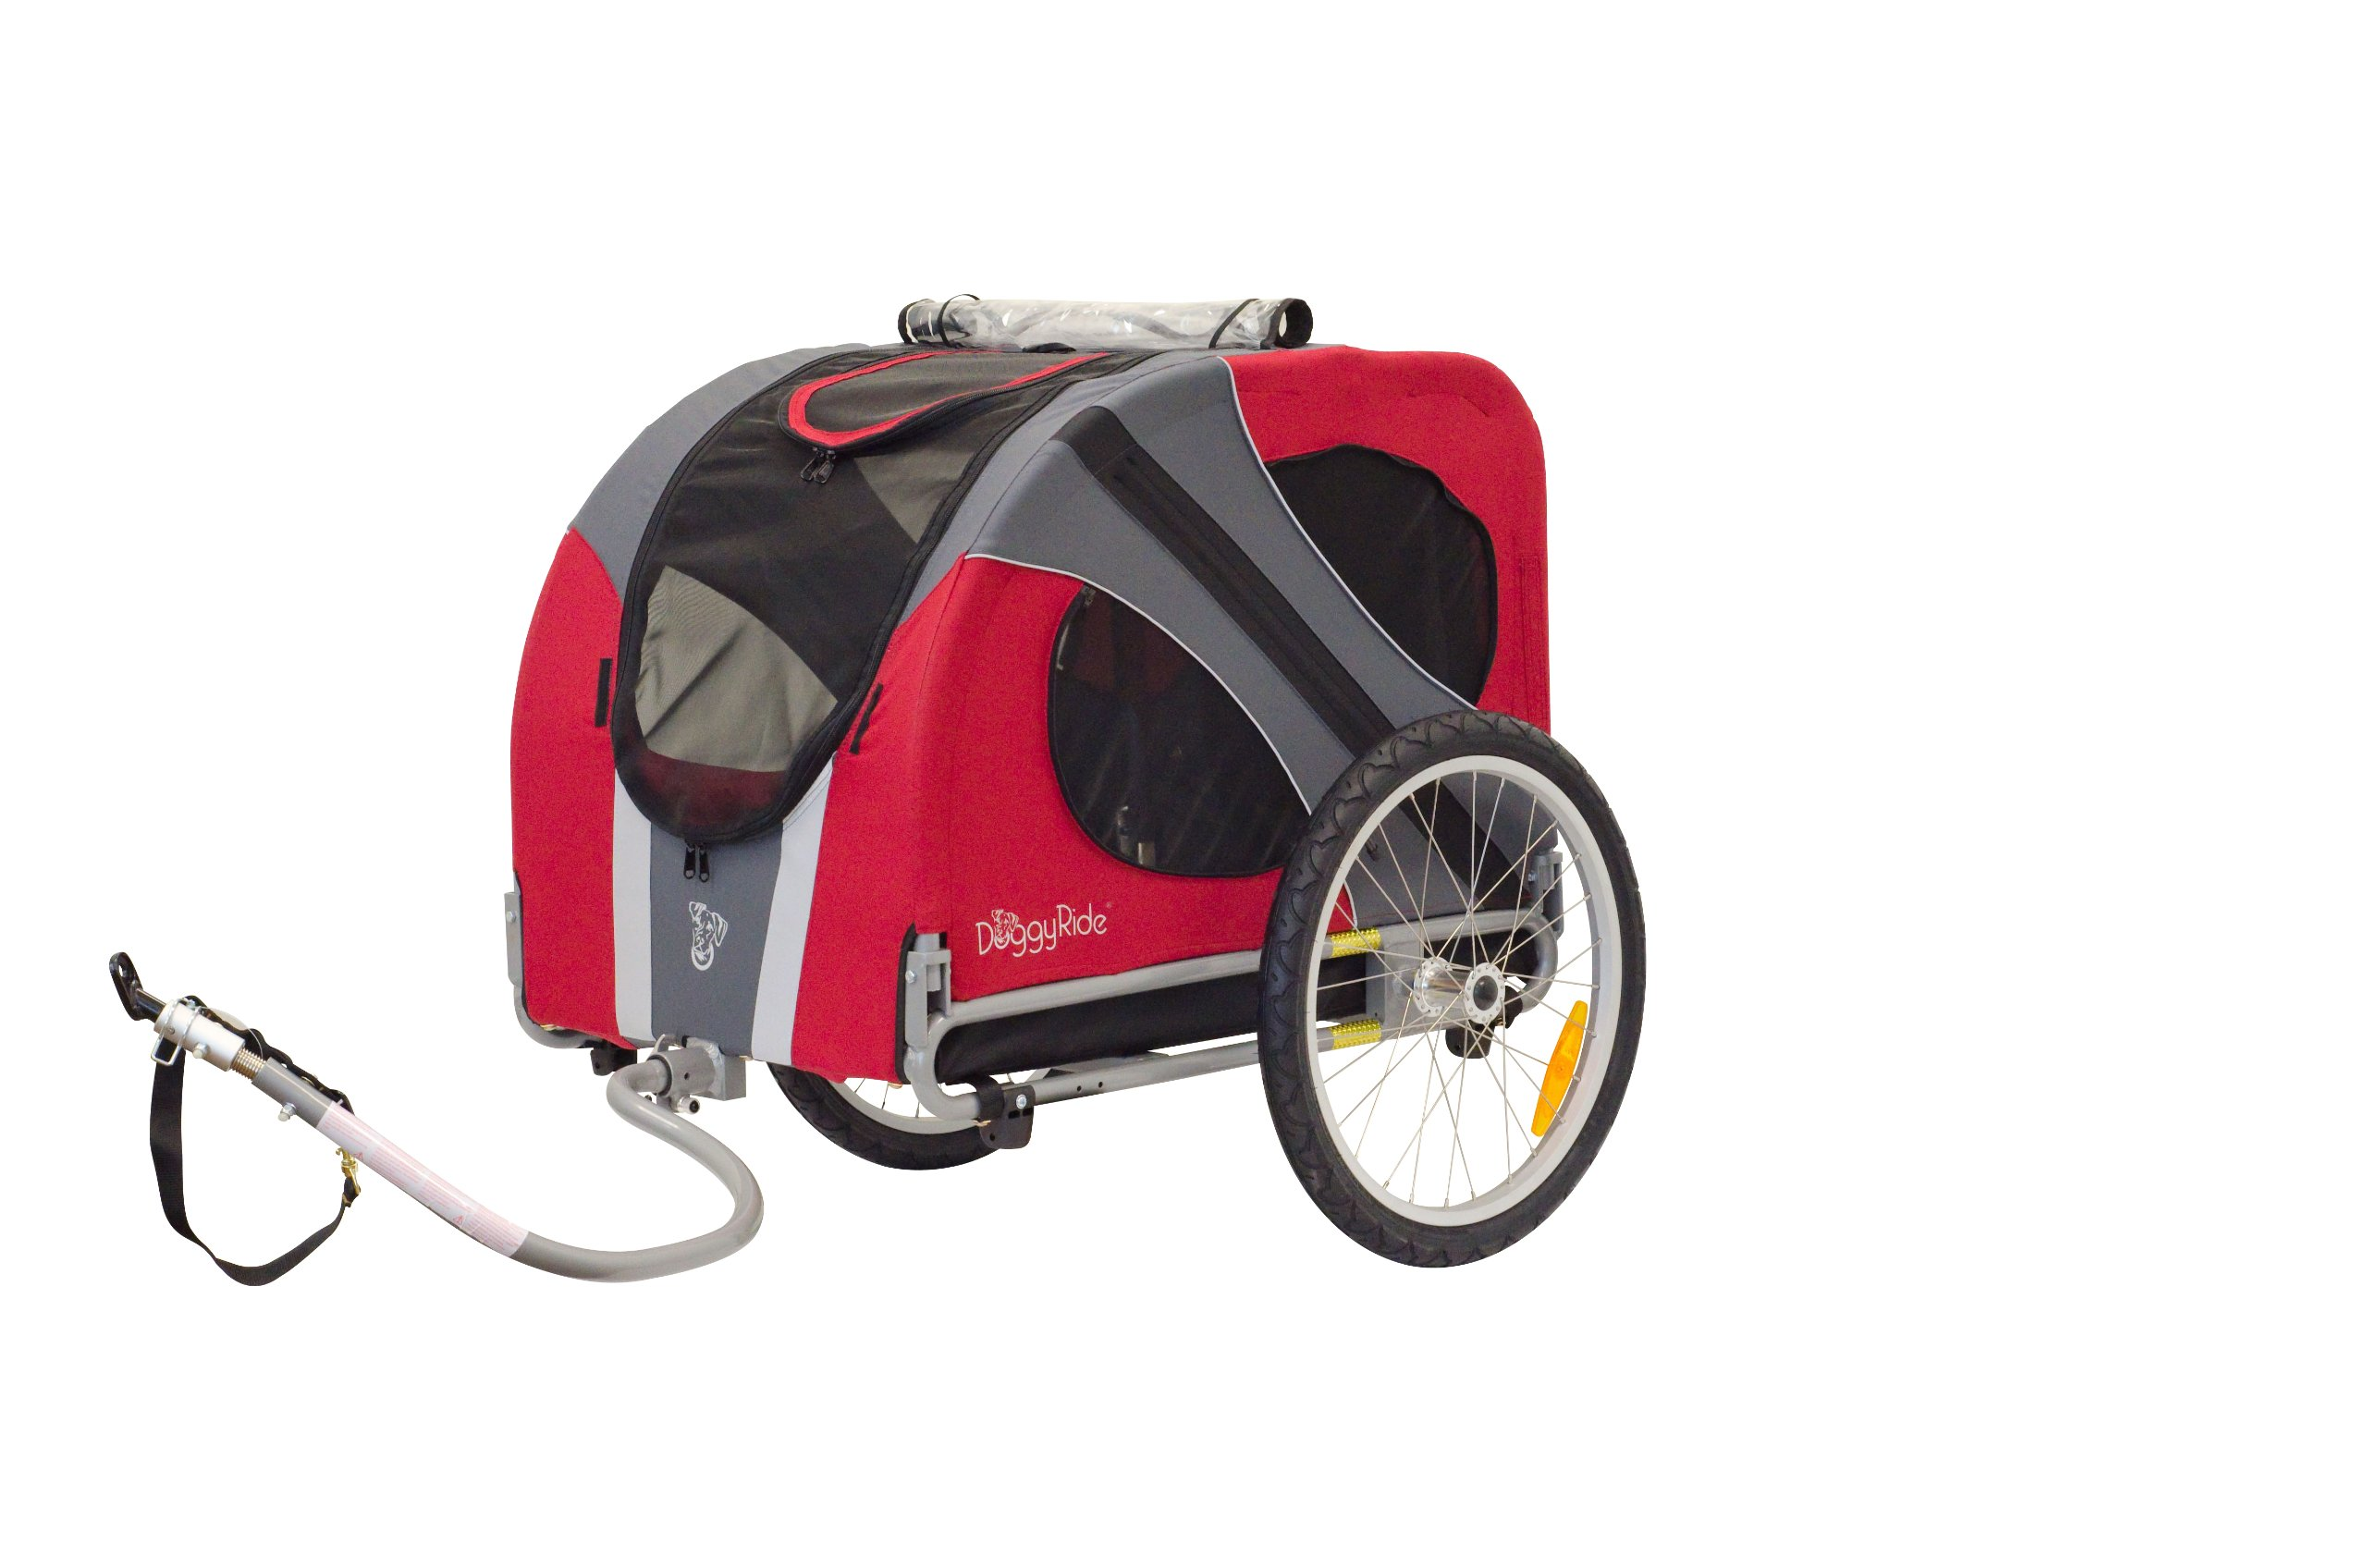 DoggyRide Novel Dog Bike Trailer, Urban Red by DoggyRide